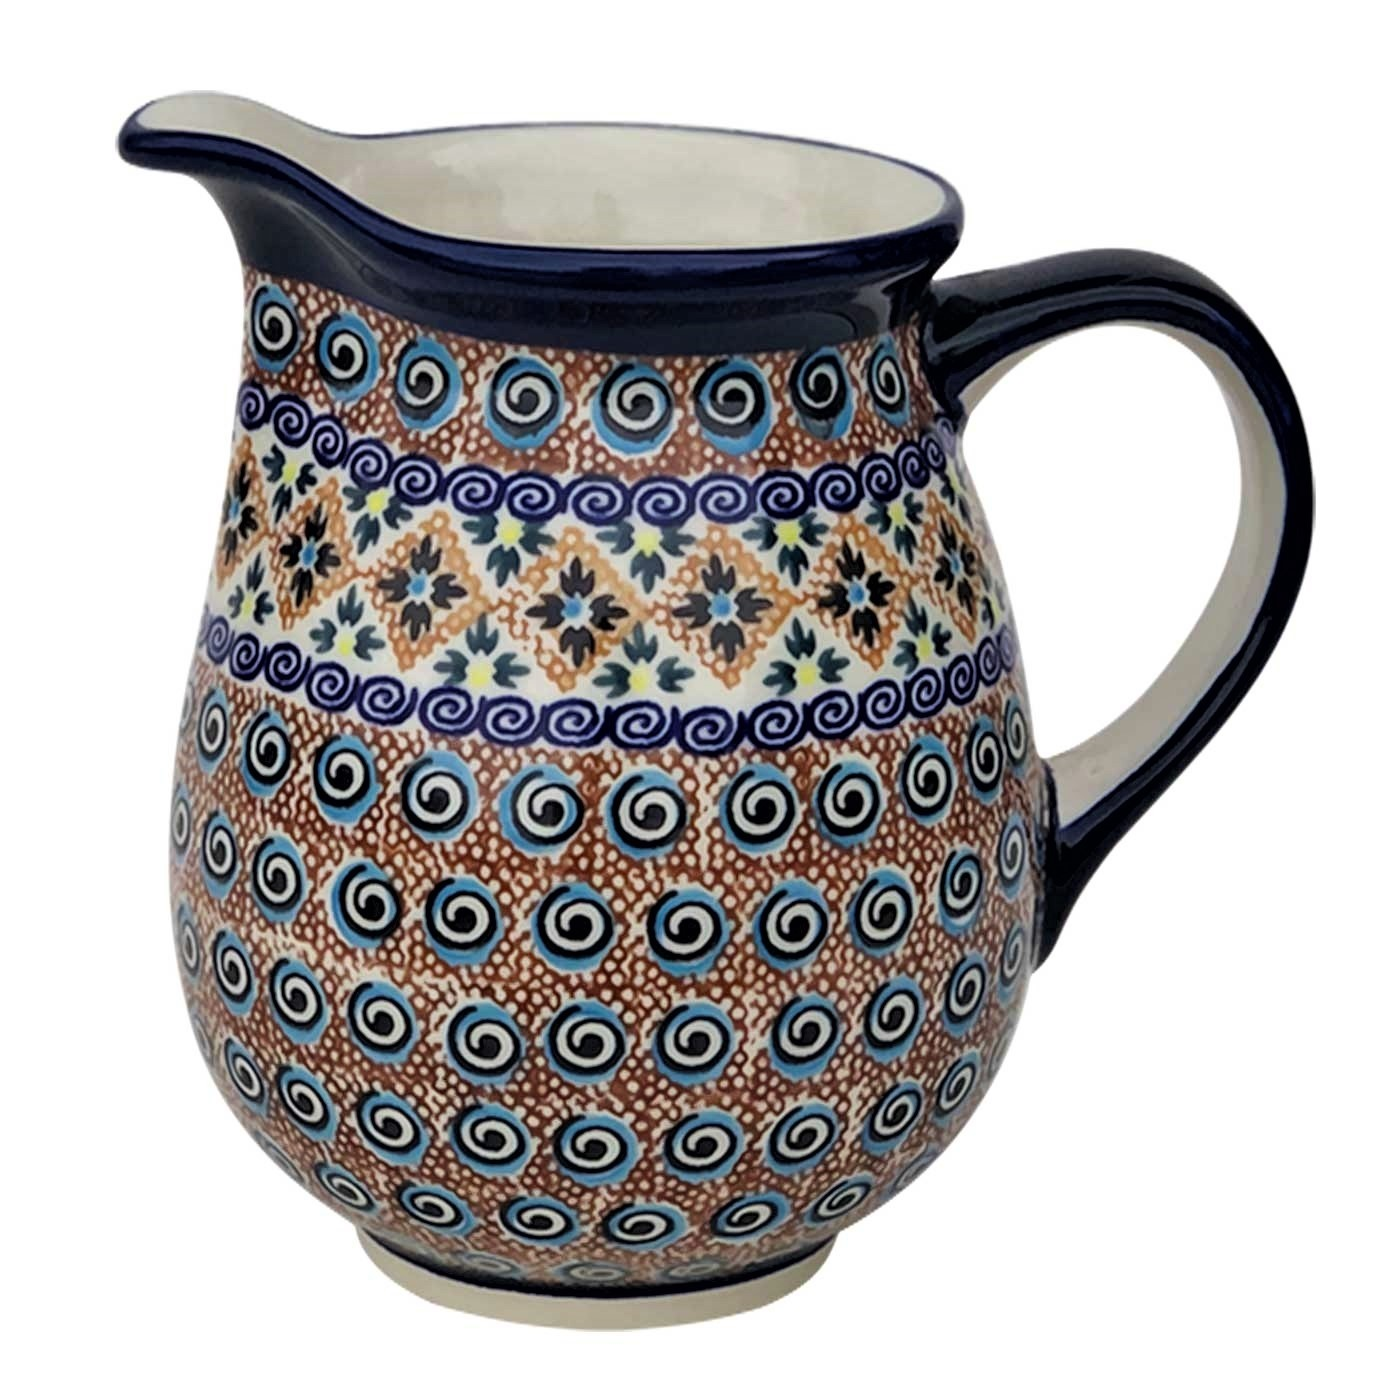 Pottery Avenue 28-ounce Stoneware Pitcher-Vase - 951-DU193 India